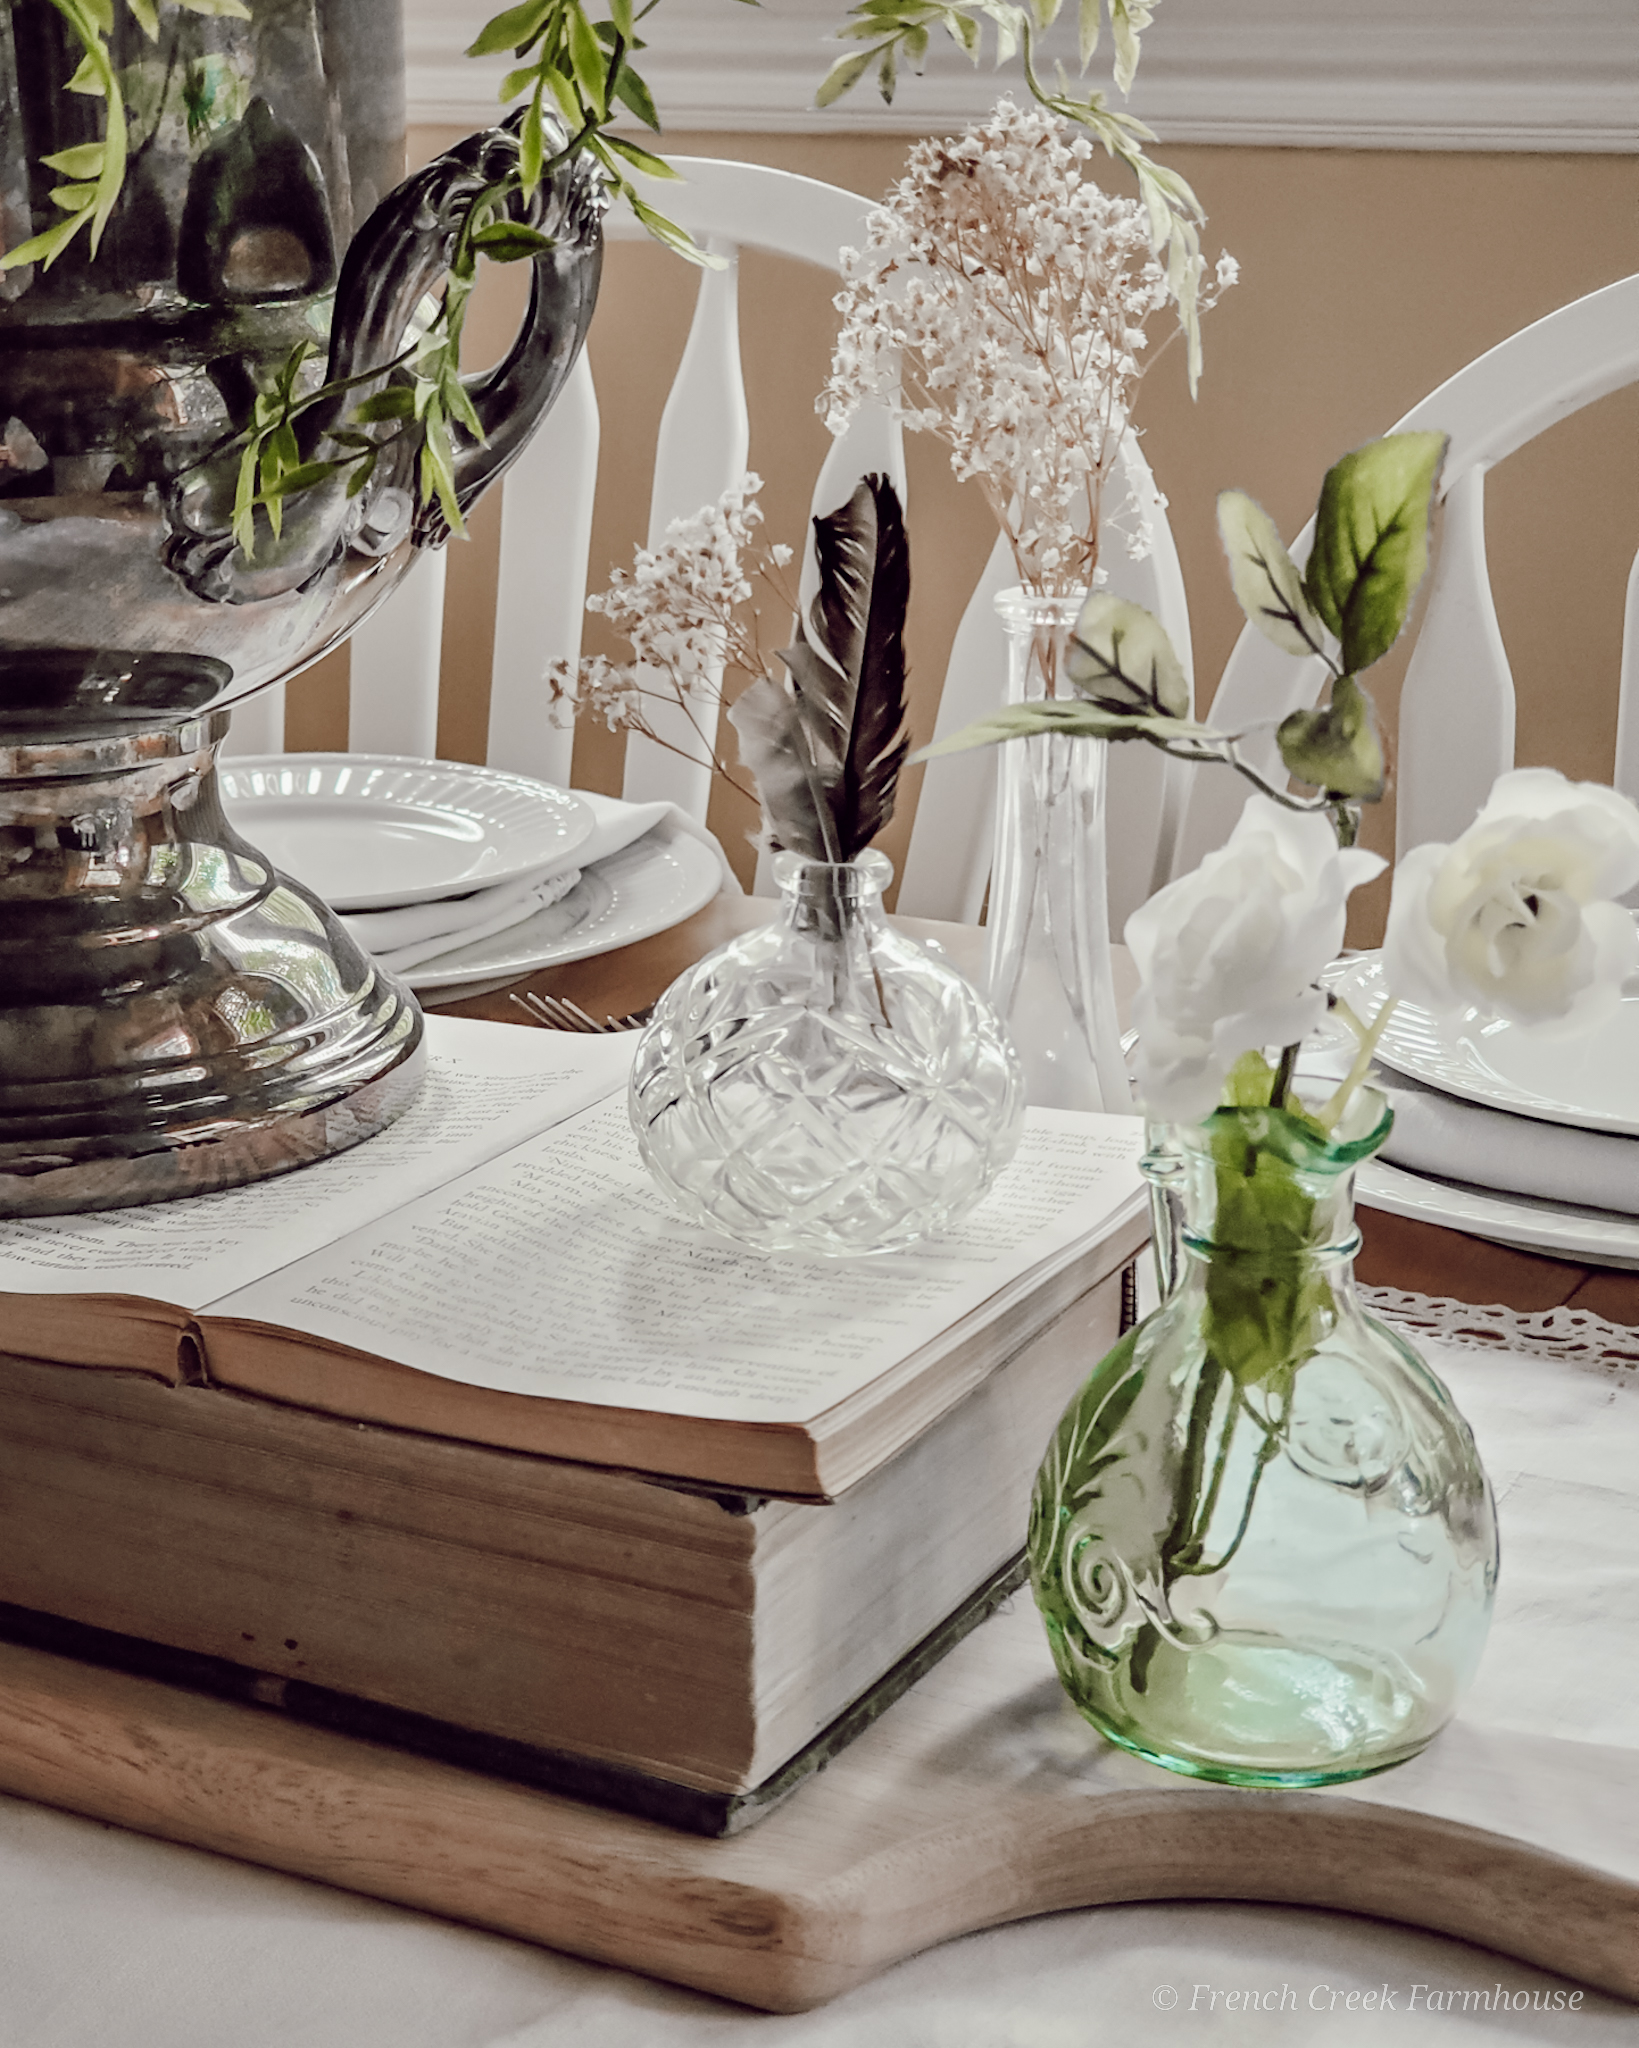 Small vintage vases and old books used for a romantic centerpiece